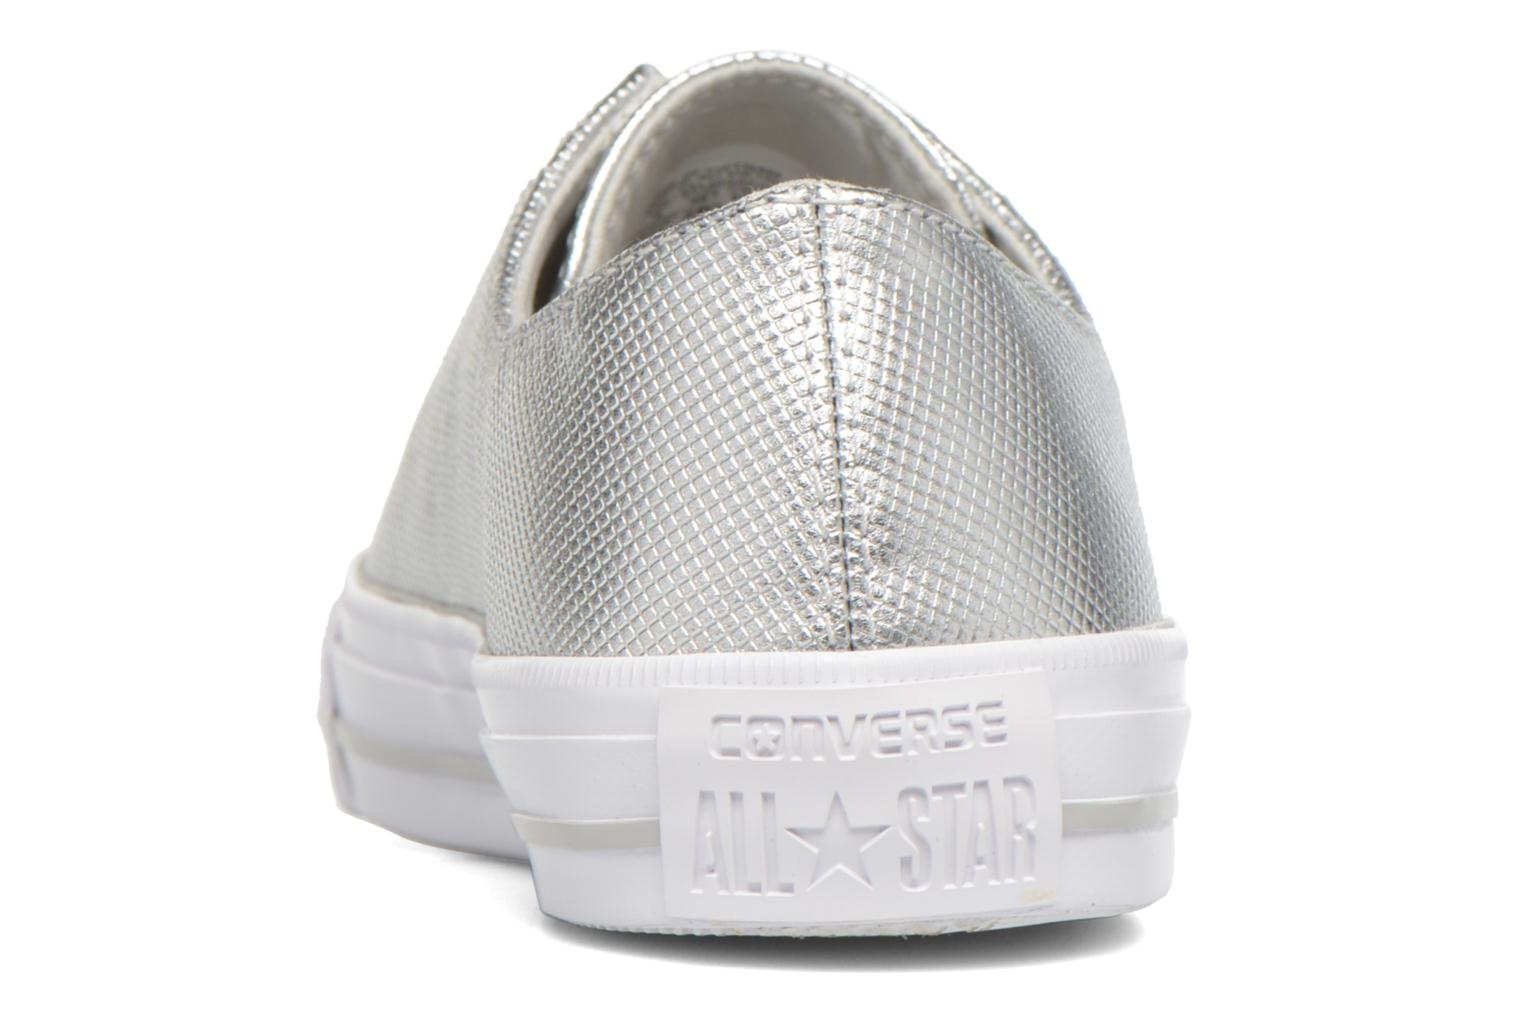 Deportivas Converse Ctas Gemma Diamond Foil Leather Ox Plateado vista lateral derecha